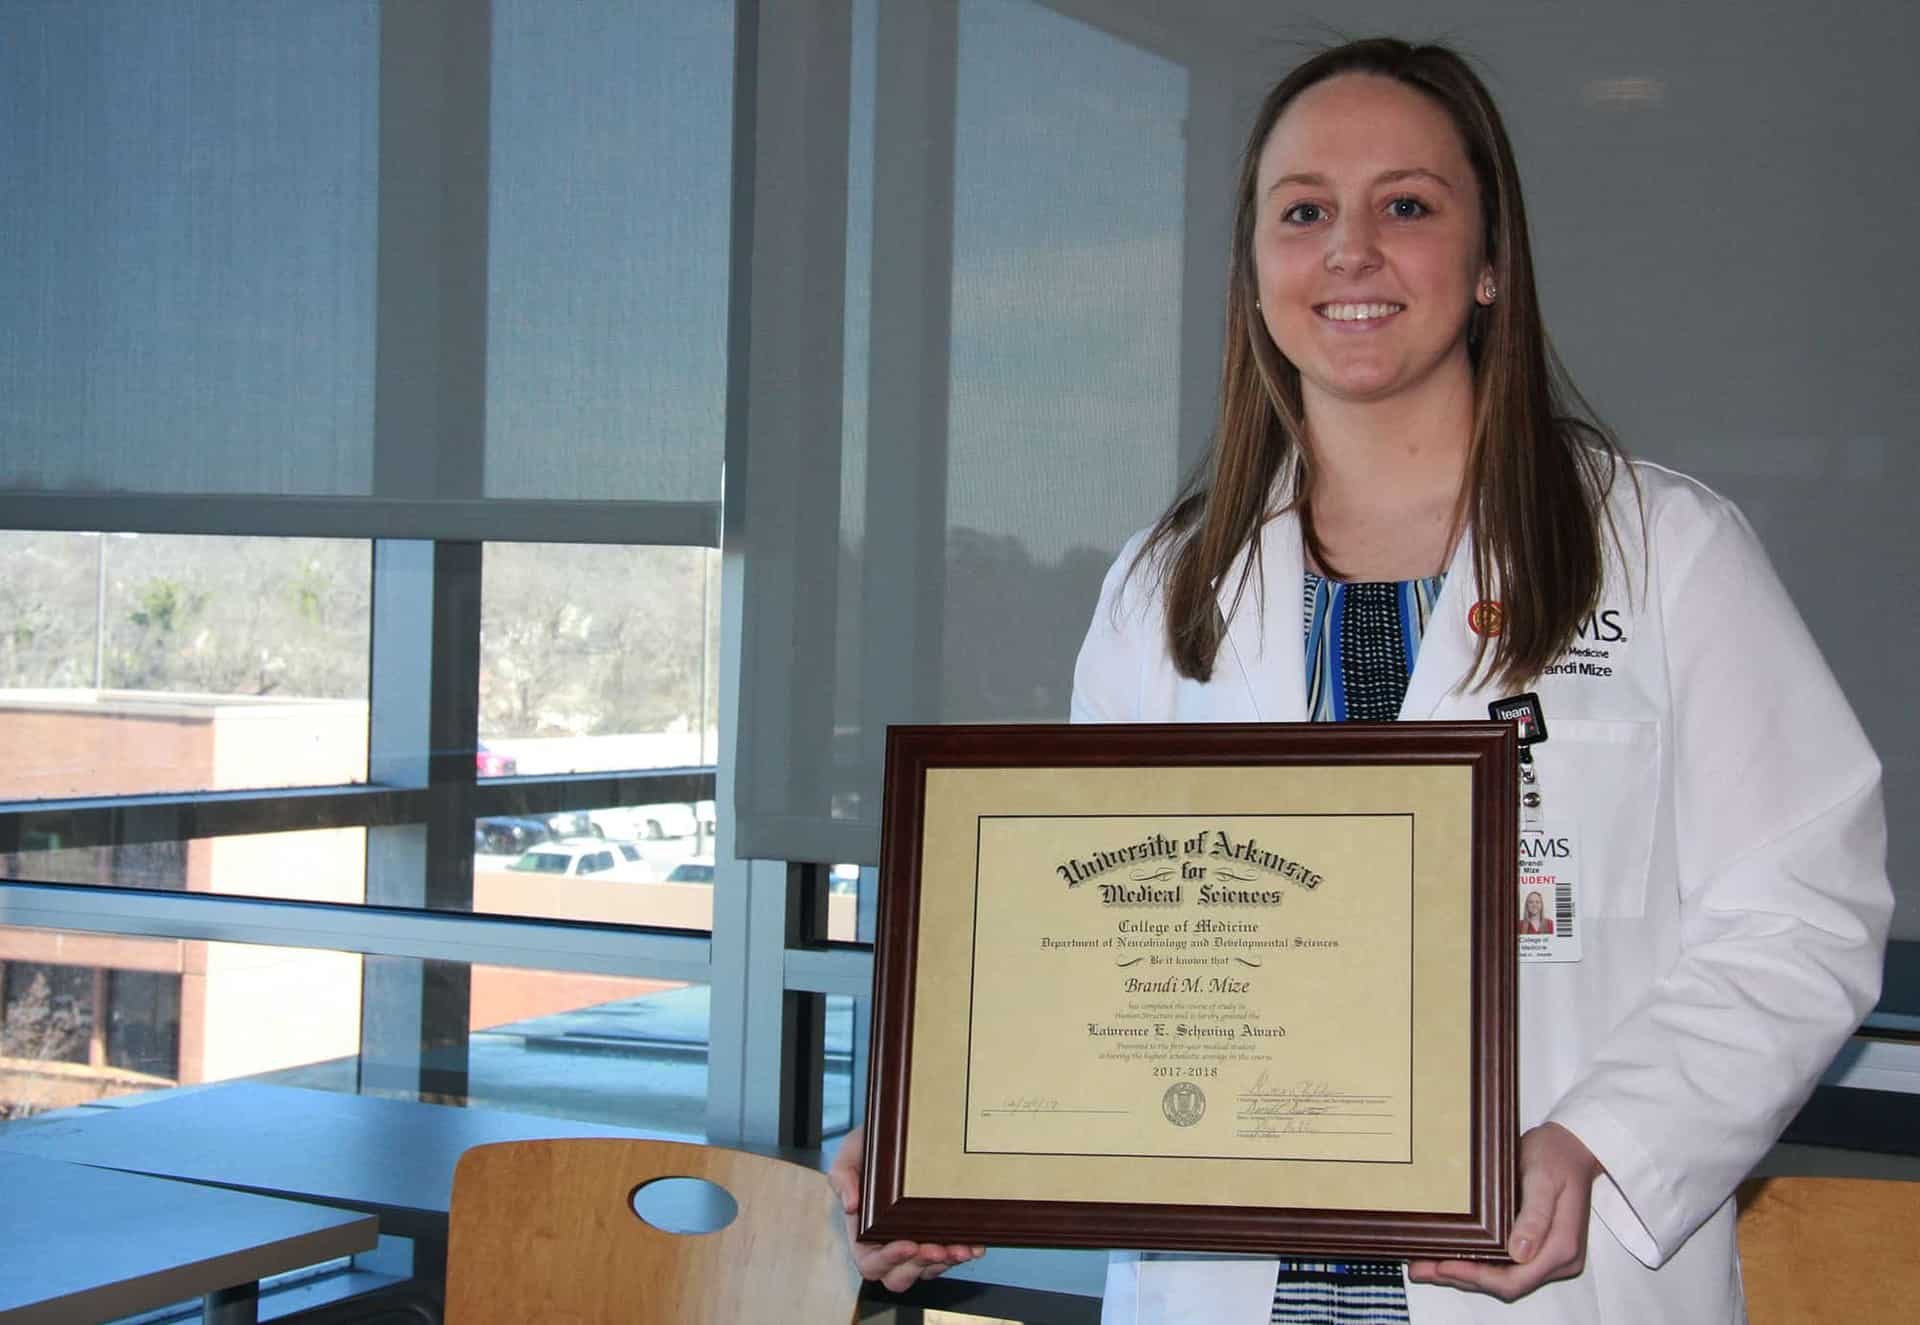 Brandi Mize is the 15th recipient of the Lawrence E. Scheving Award, established in 2004 to recognize the first-year medical student with the highest grade in Human Structure.